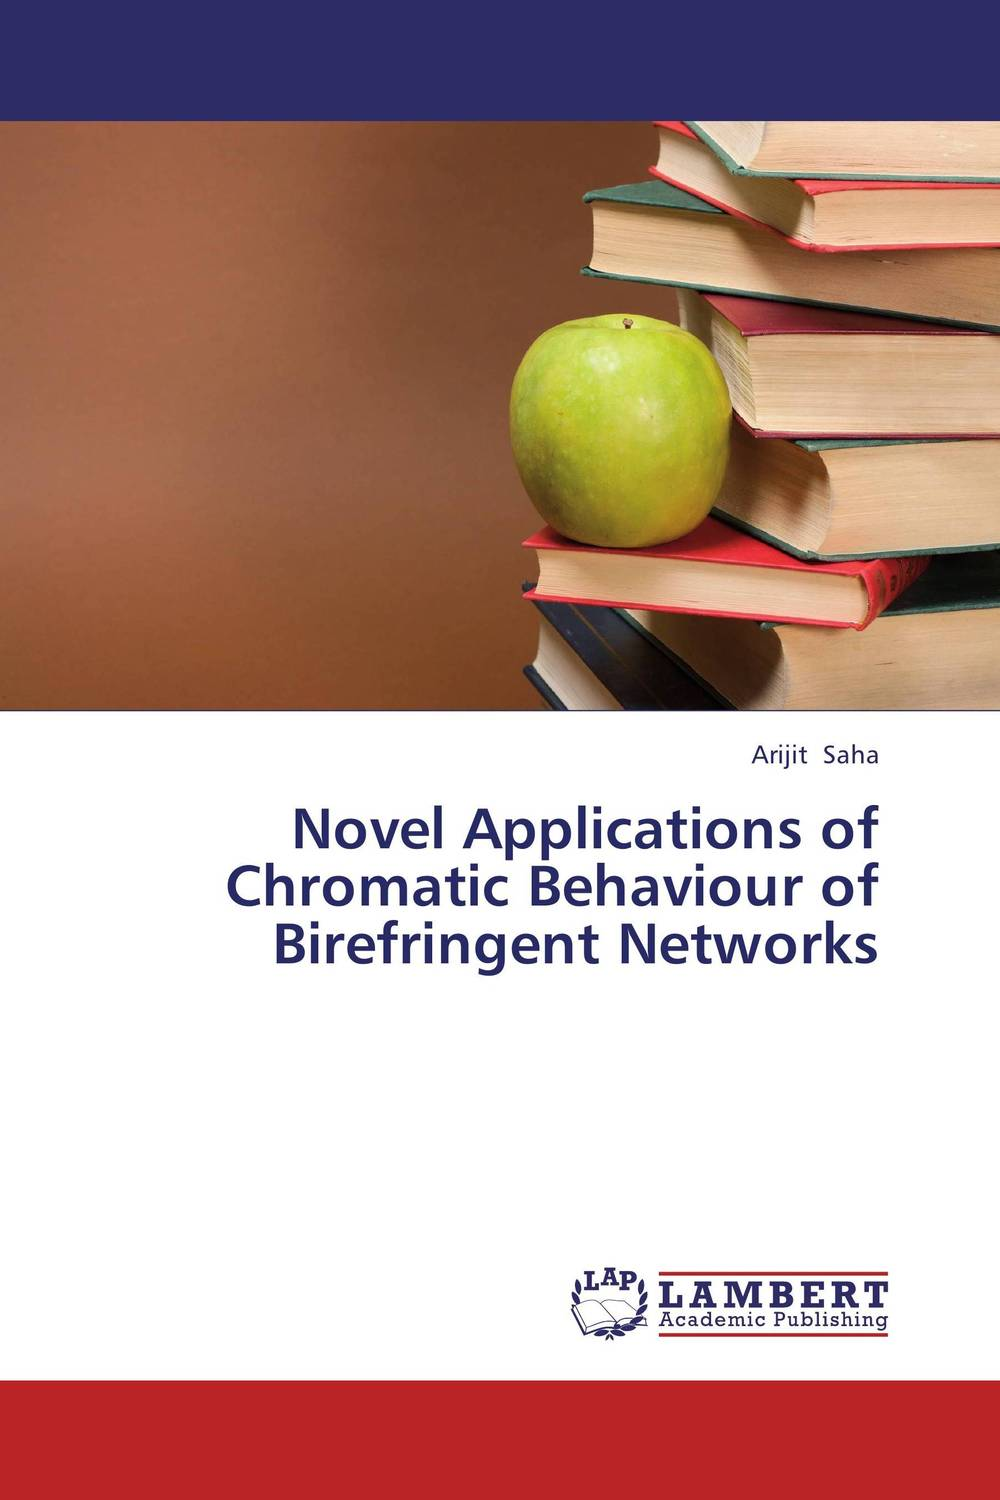 Novel Applications of Chromatic Behaviour of Birefringent Networks characteristics and applications of a novel alcohol oxidase